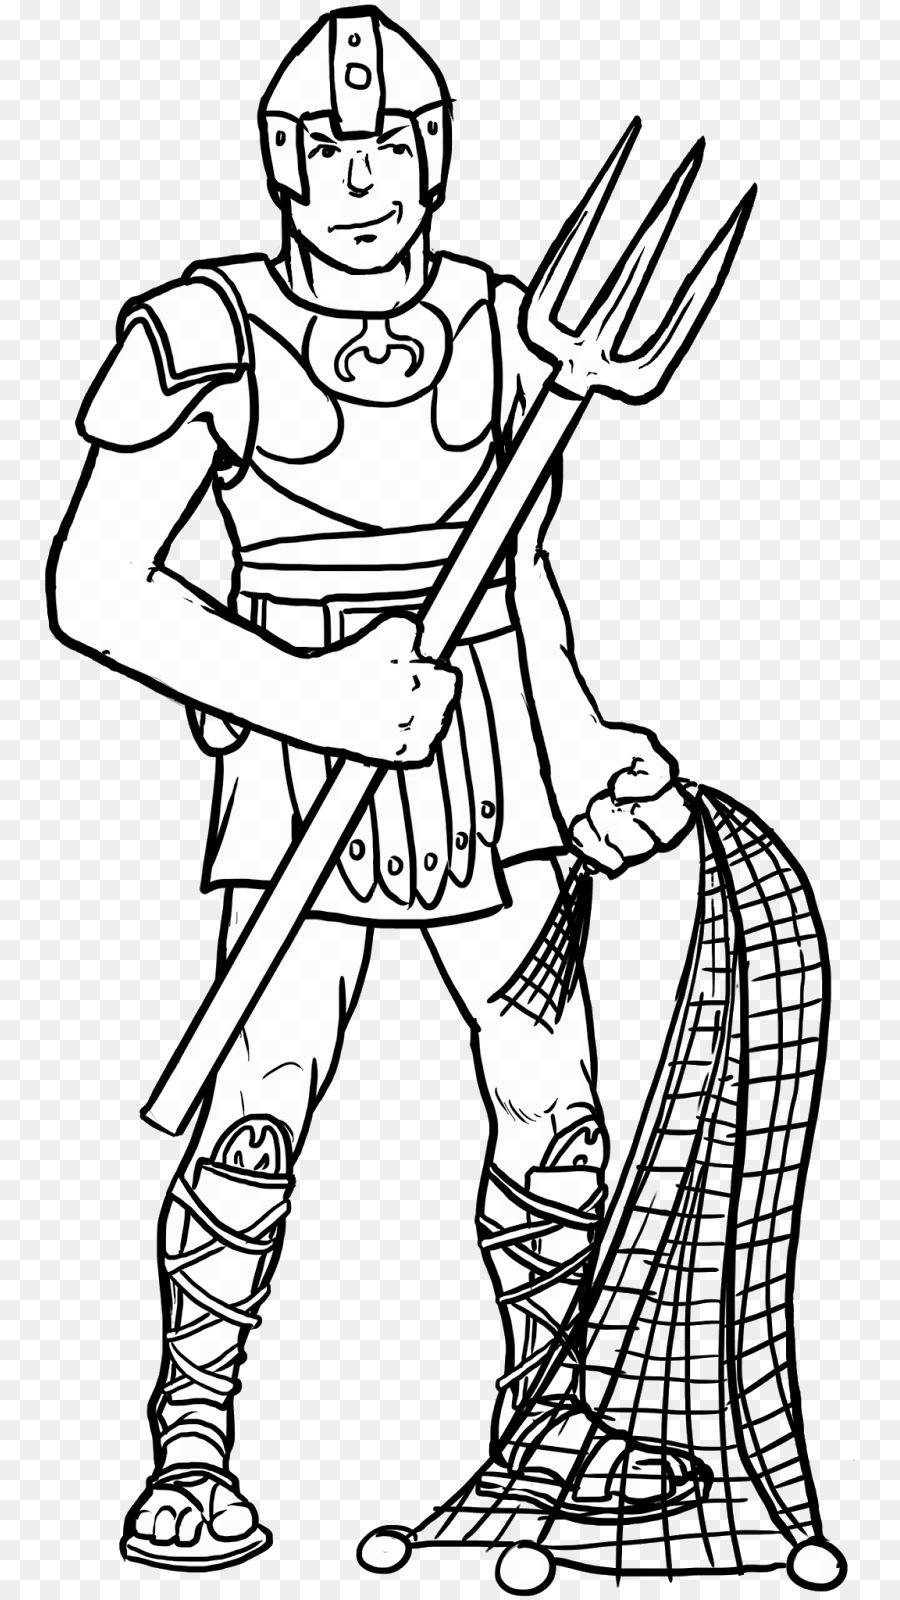 gladiator pictures to colour in roman gladiator coloring page free printable coloring pages gladiator colour pictures in to